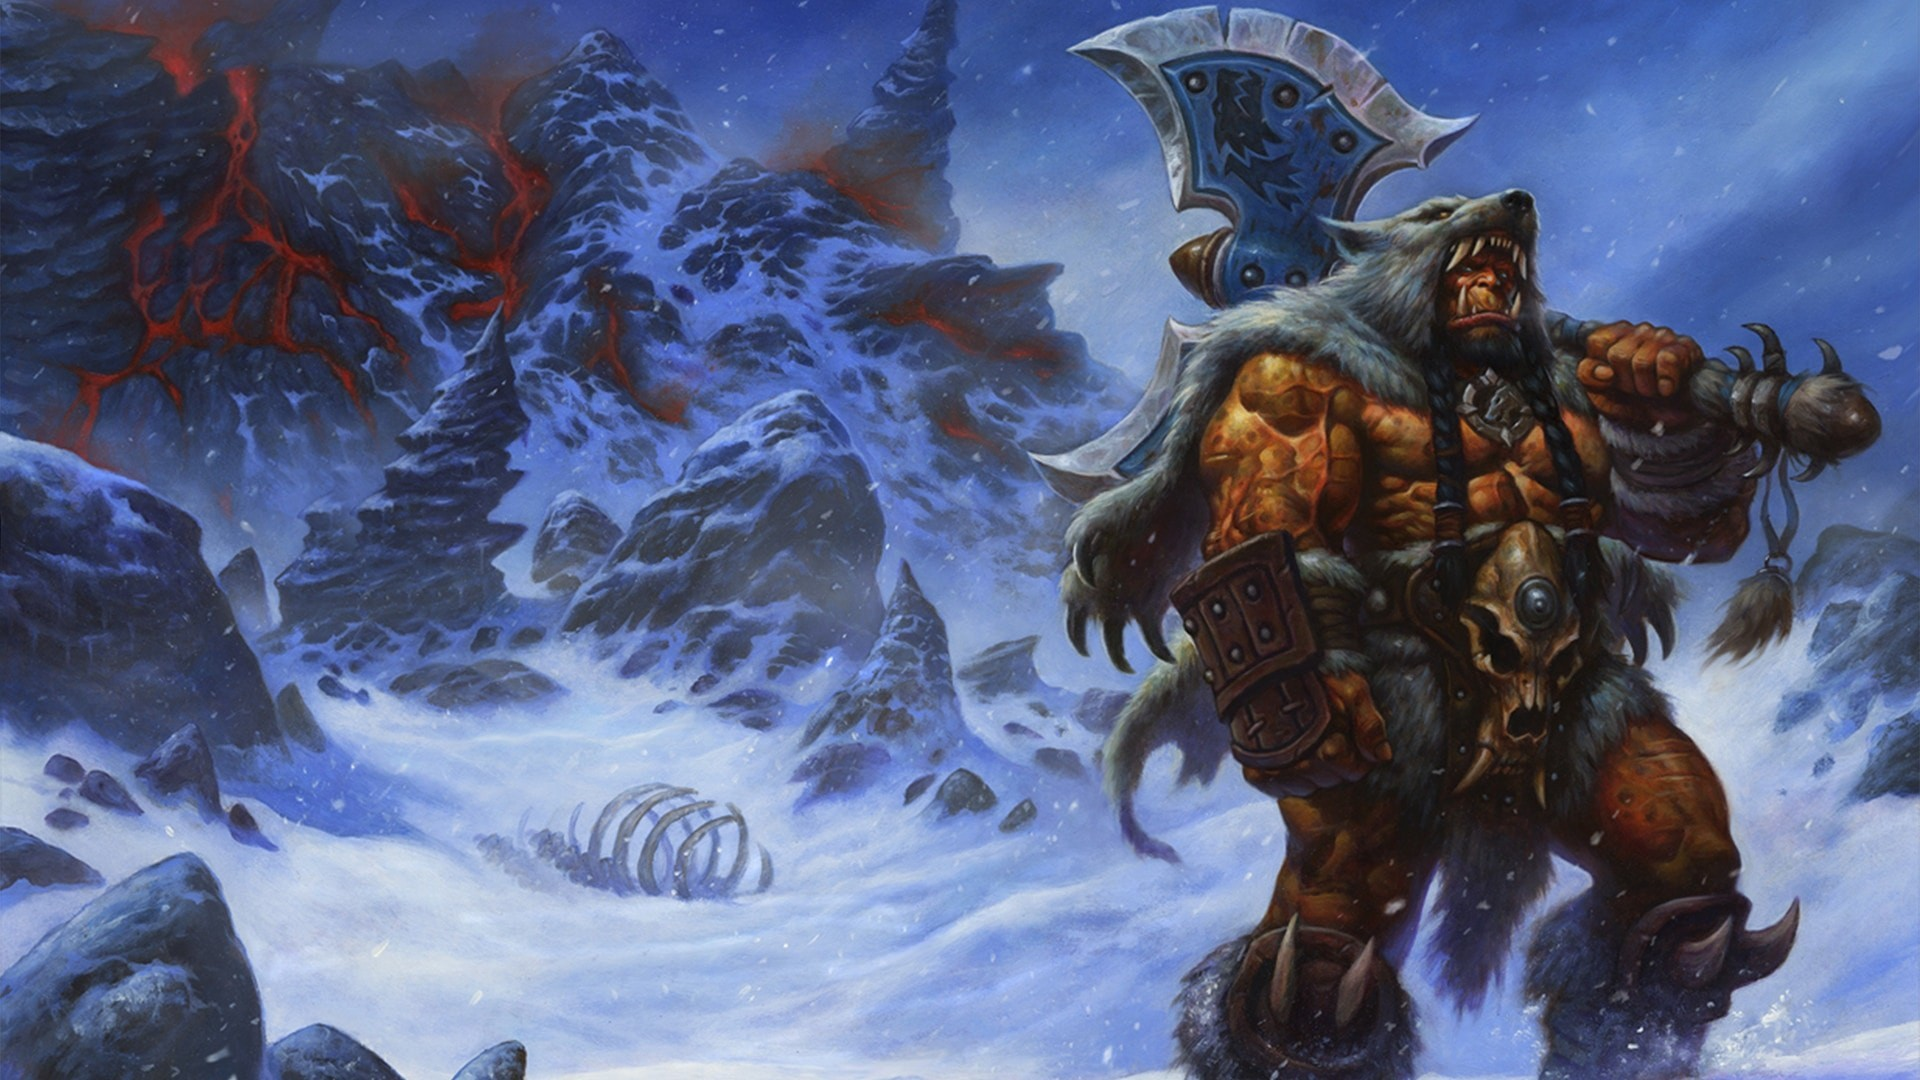 Orc Wallpapers Hd Wallpaper Collections 4kwallpaperwiki